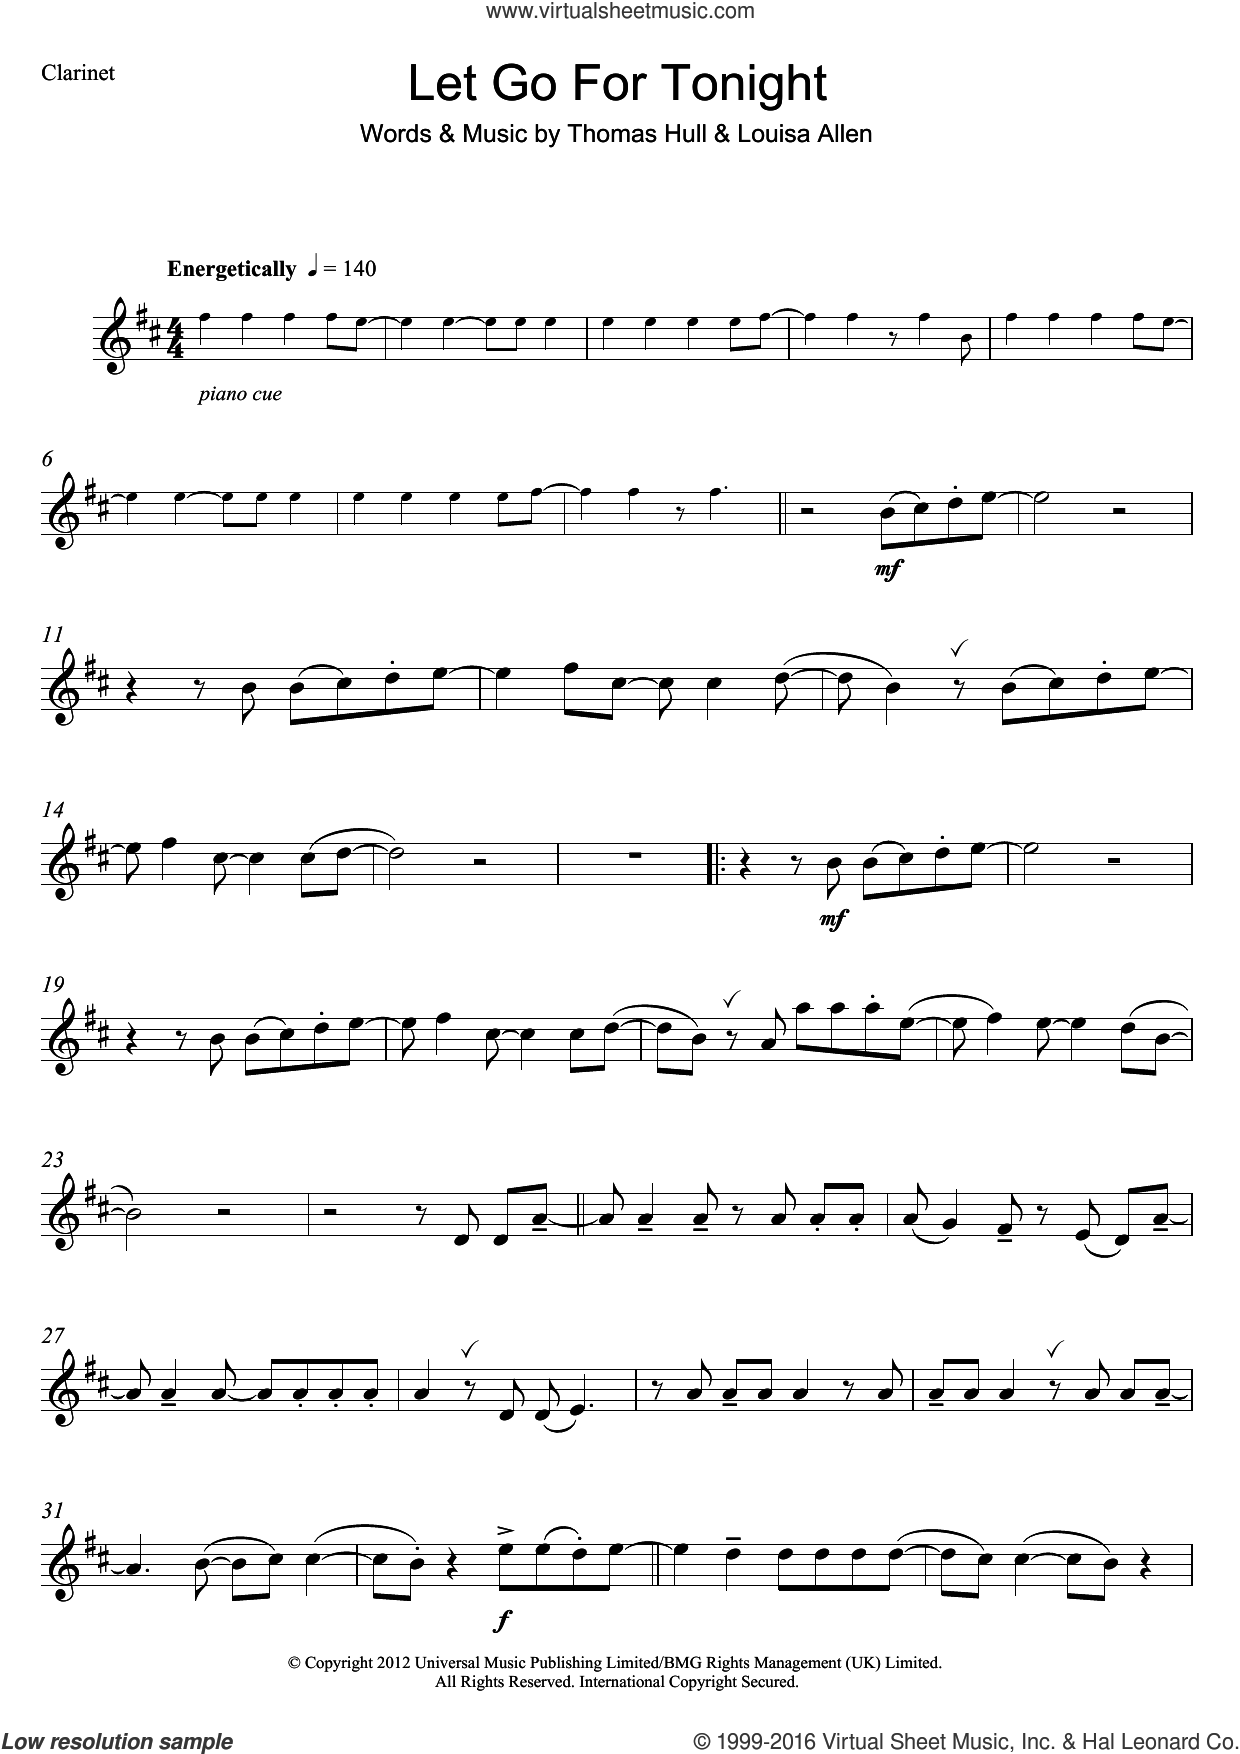 Let Go For Tonight sheet music for clarinet solo by Foxes, Louisa Allen and Tom Hull, intermediate skill level